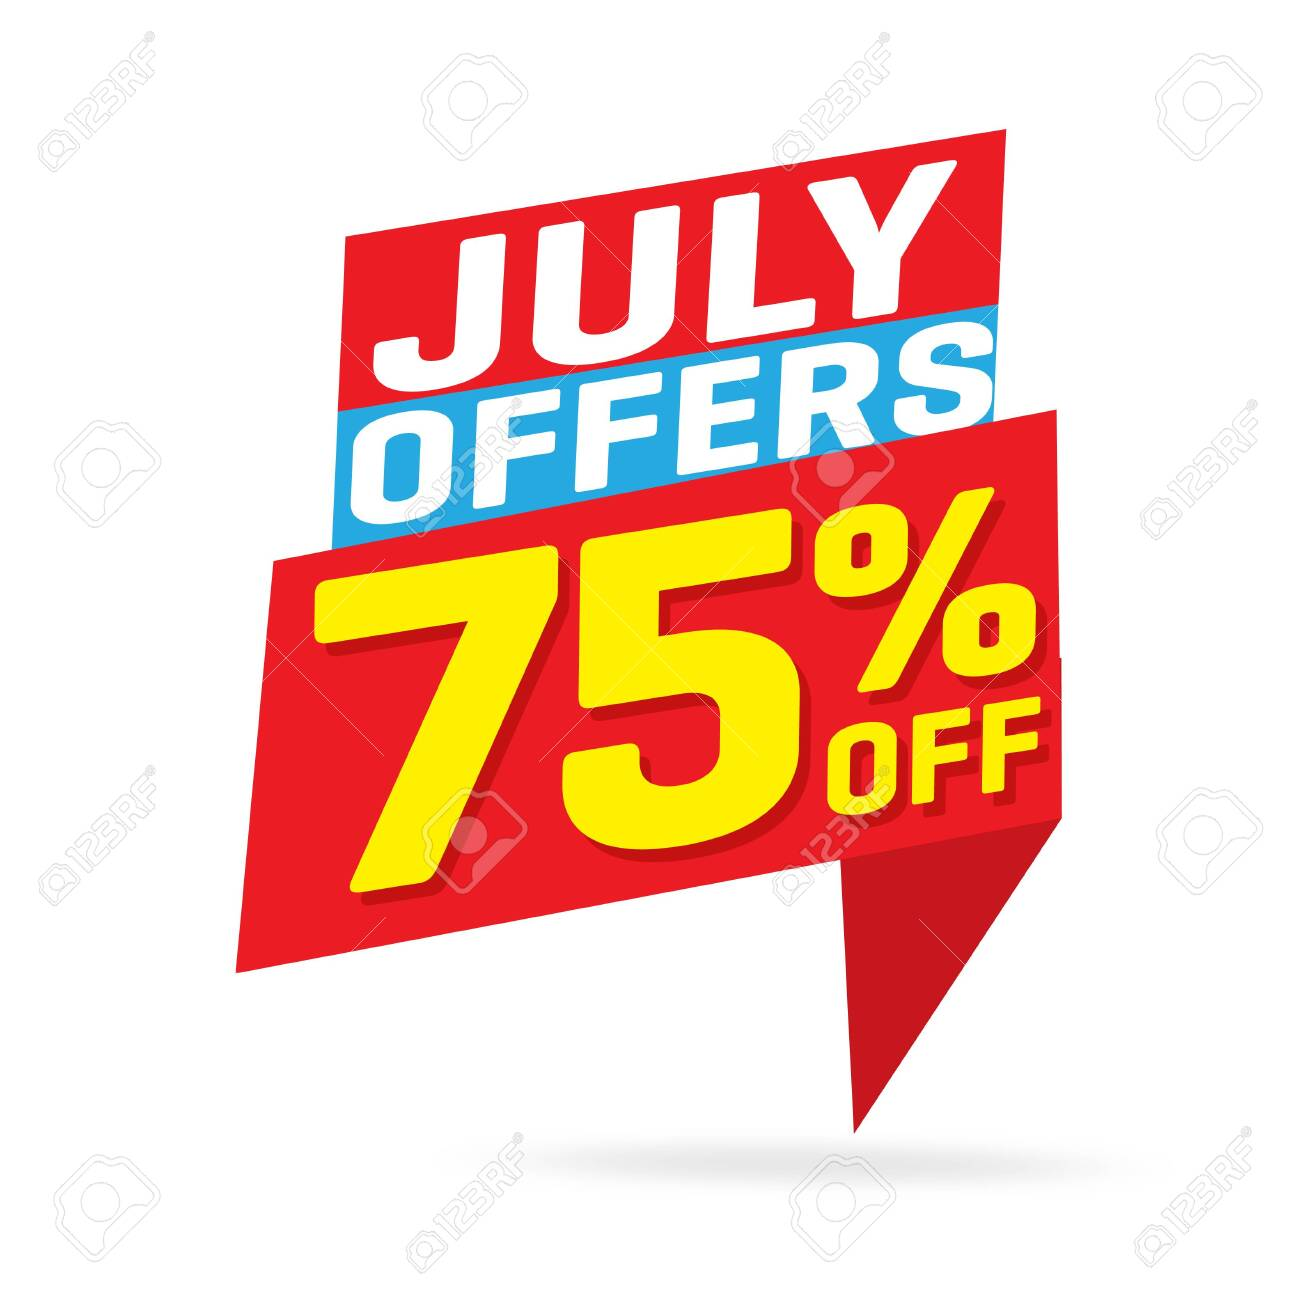 Sale and special offer tag, price tags, Sales Label, banner, Vector illustration. - 139493097